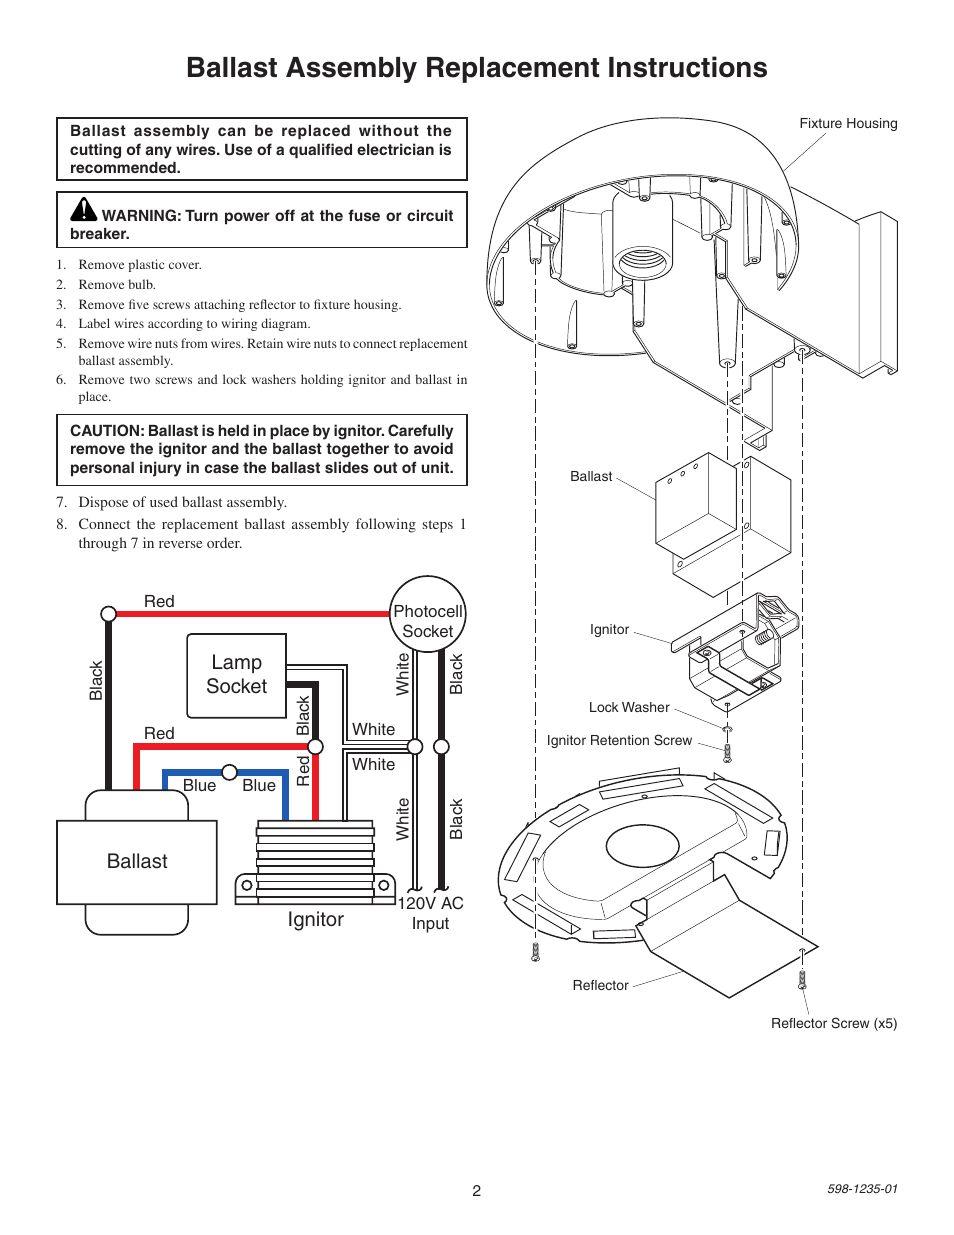 Replacement Ballast Wiring Diagram Trusted Schematics 6 Lamp T8 With Two Assembly Instructions Socket Triad